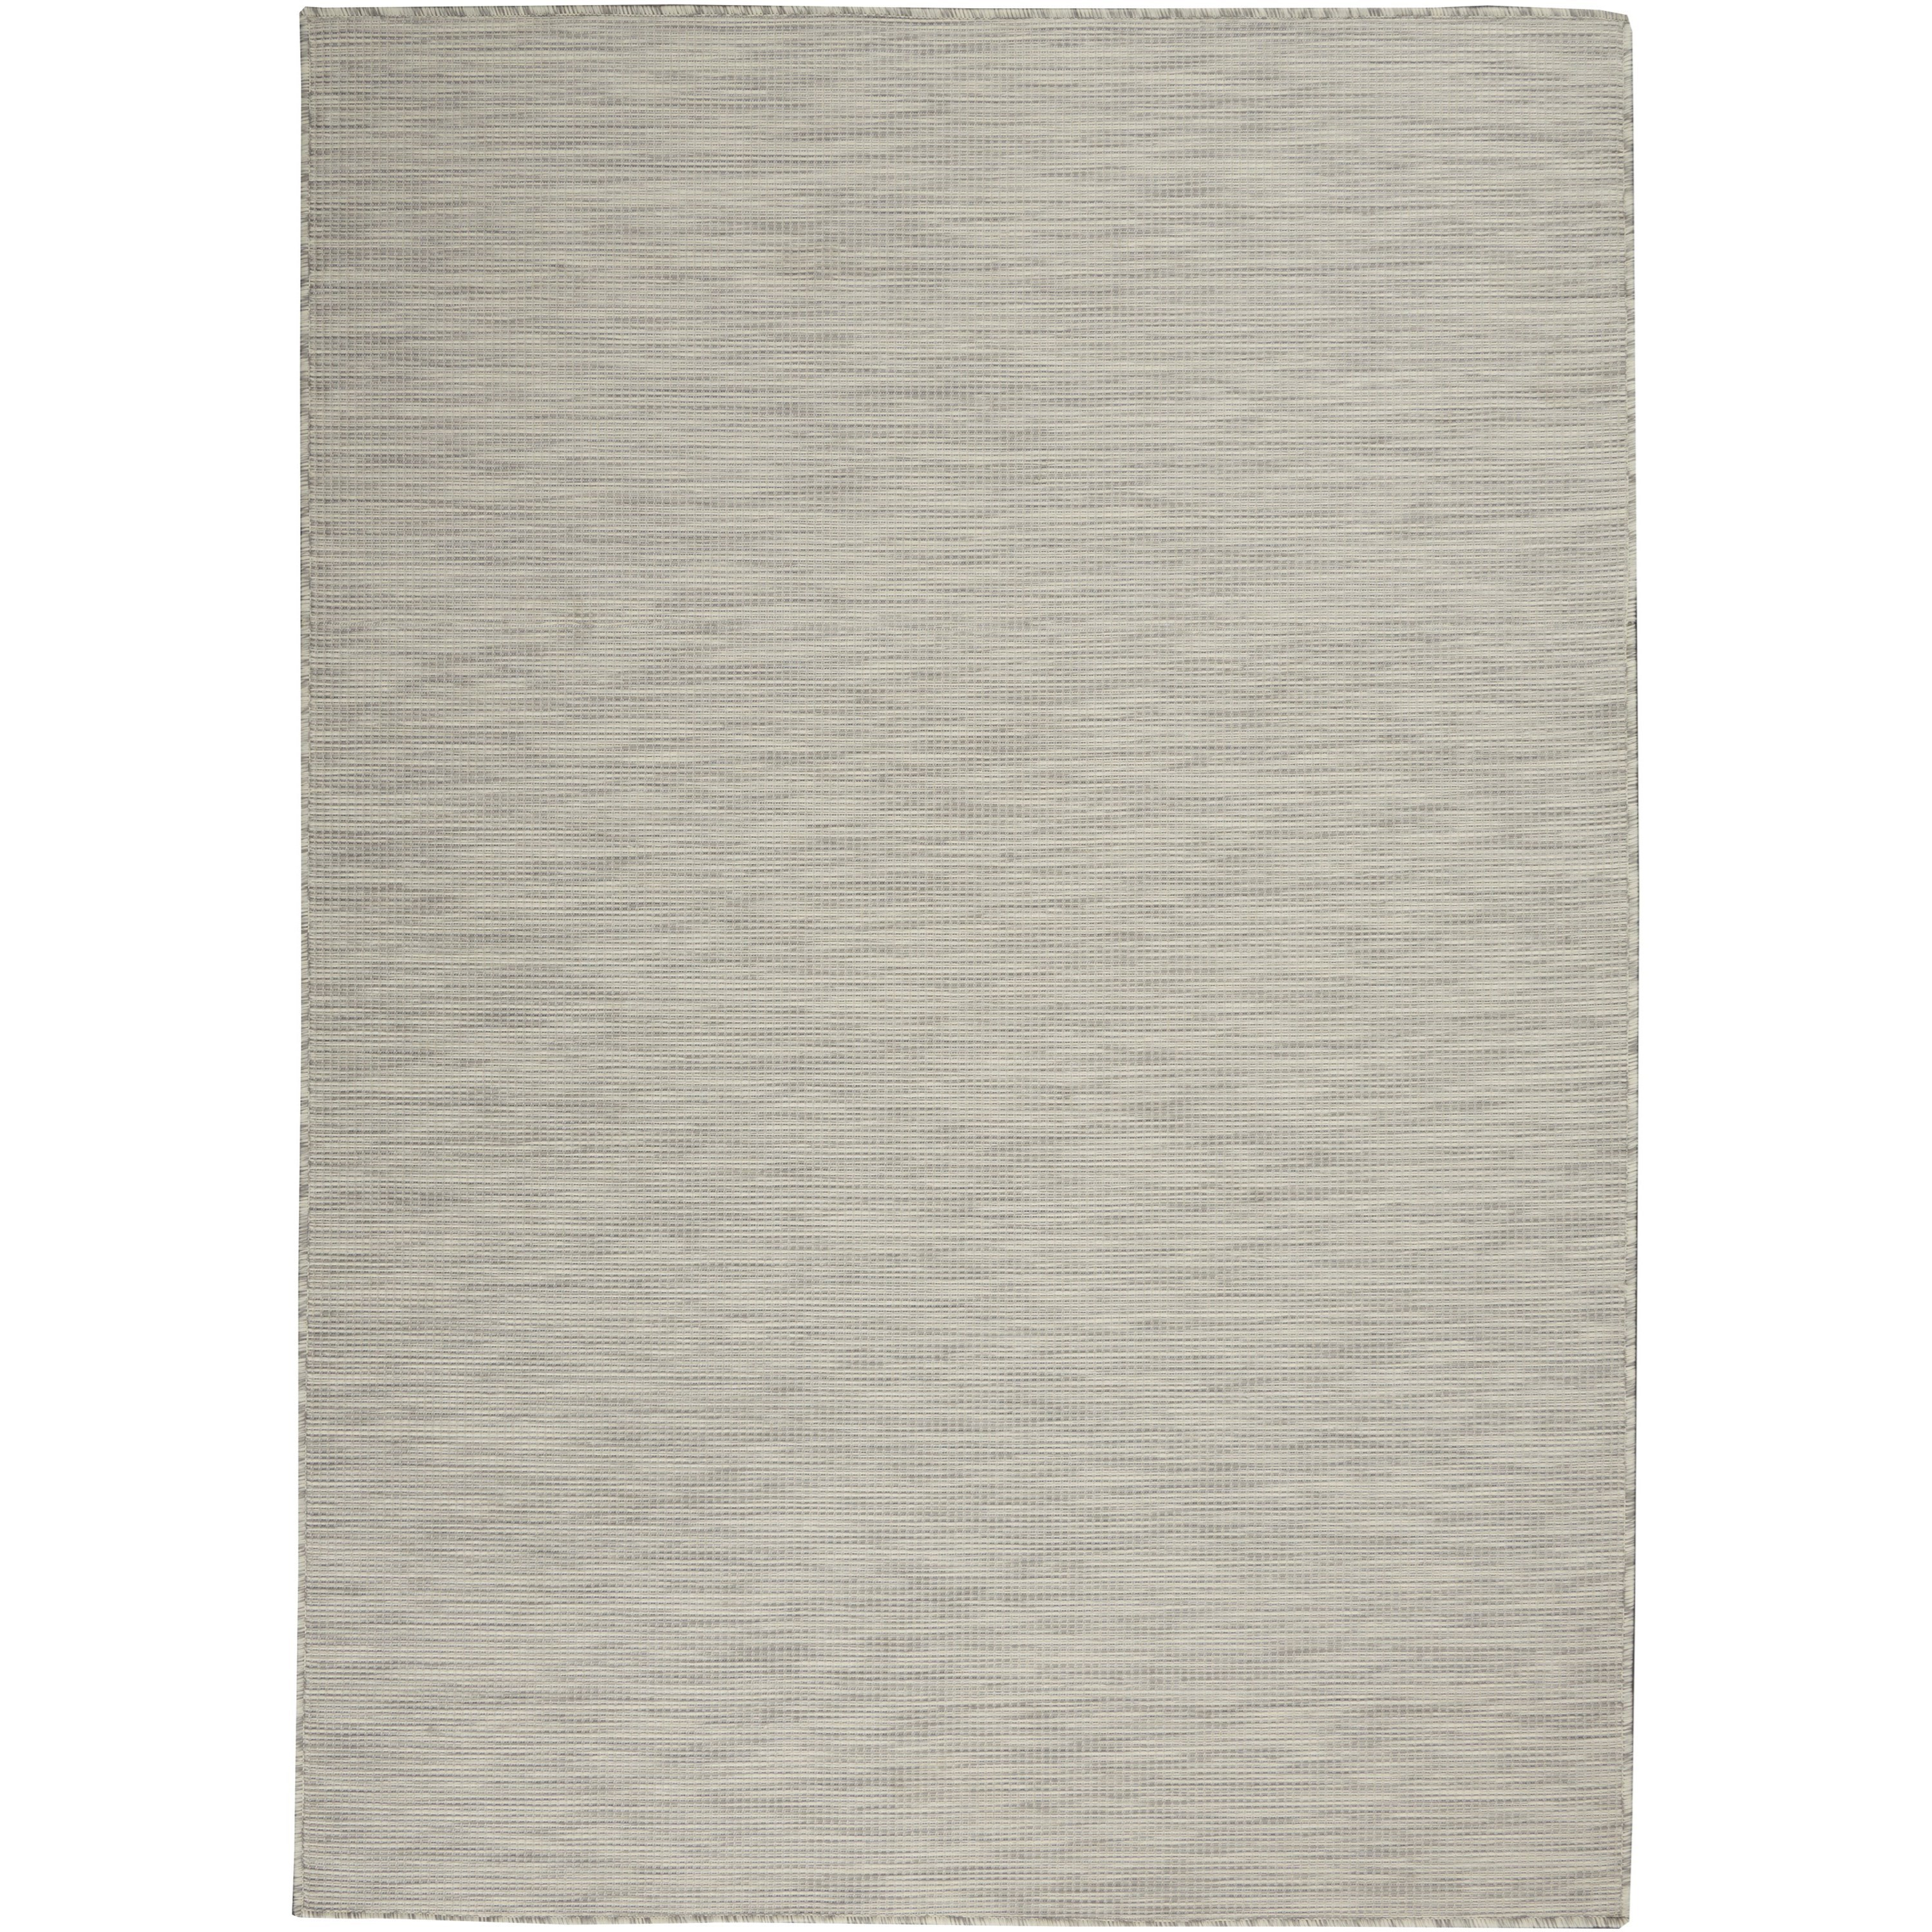 Positano 2020 5' x 7' Rug by Nourison at Story & Lee Furniture